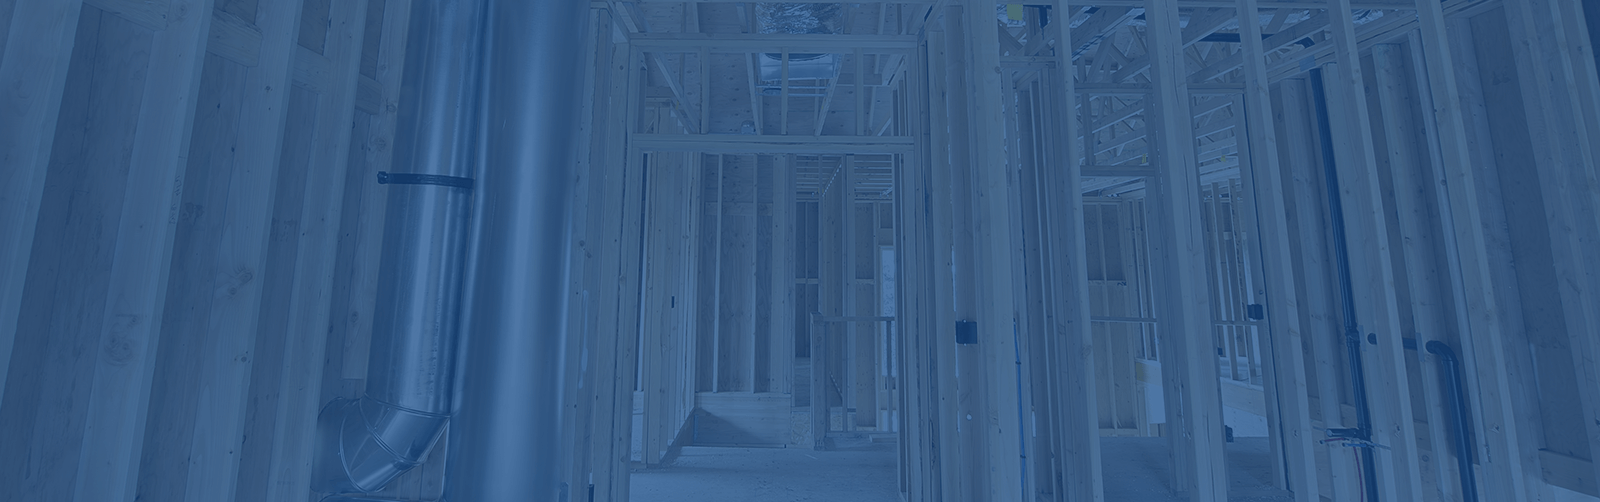 hight resolution of our security experts can design install and service your structured wiring network utilize some of the greatest in home technology with structured